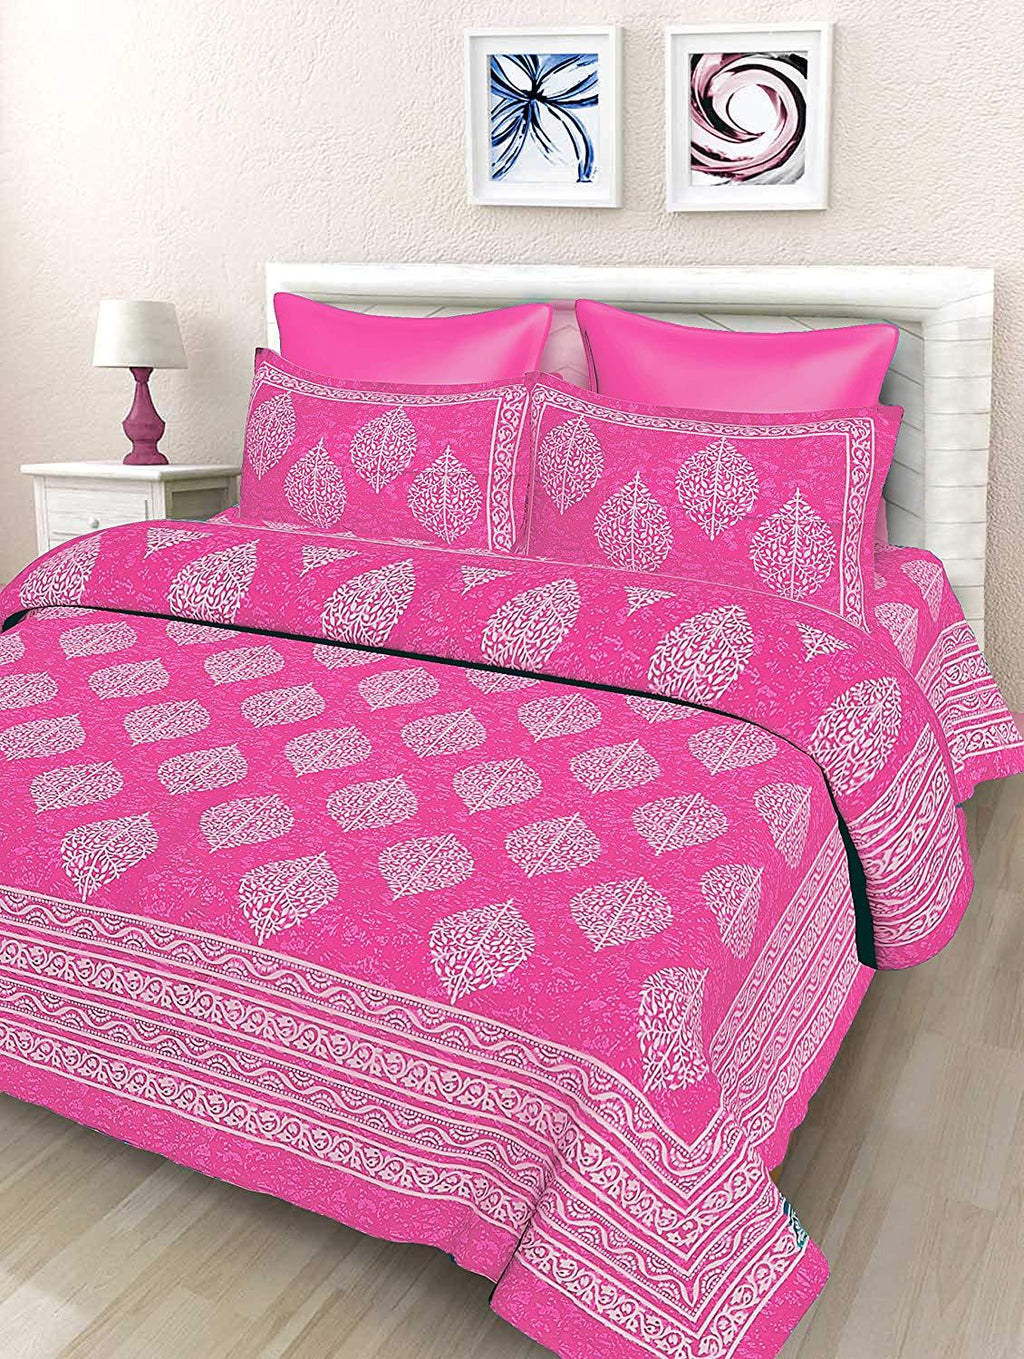 Shopiz Floral Printed 144 TC Cotton Double Bedsheet with 2 Pillow Covers, Pink